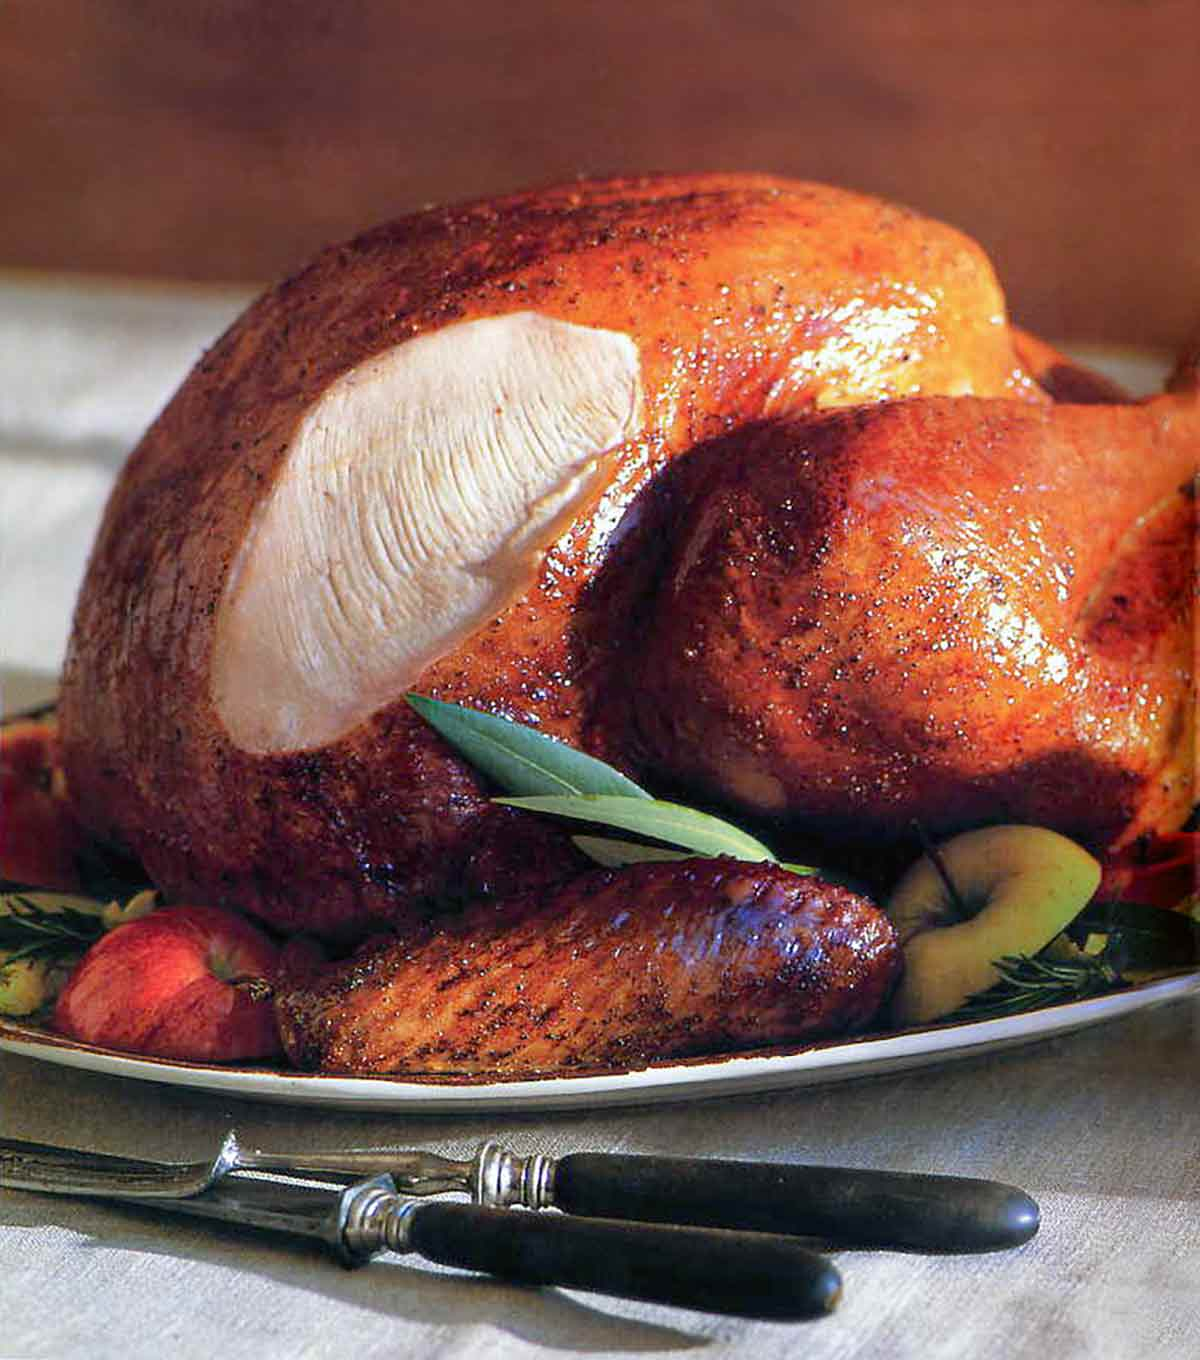 A classic roast turkey on a platter with pieces of apple and rosemary sprigs tucked around it.